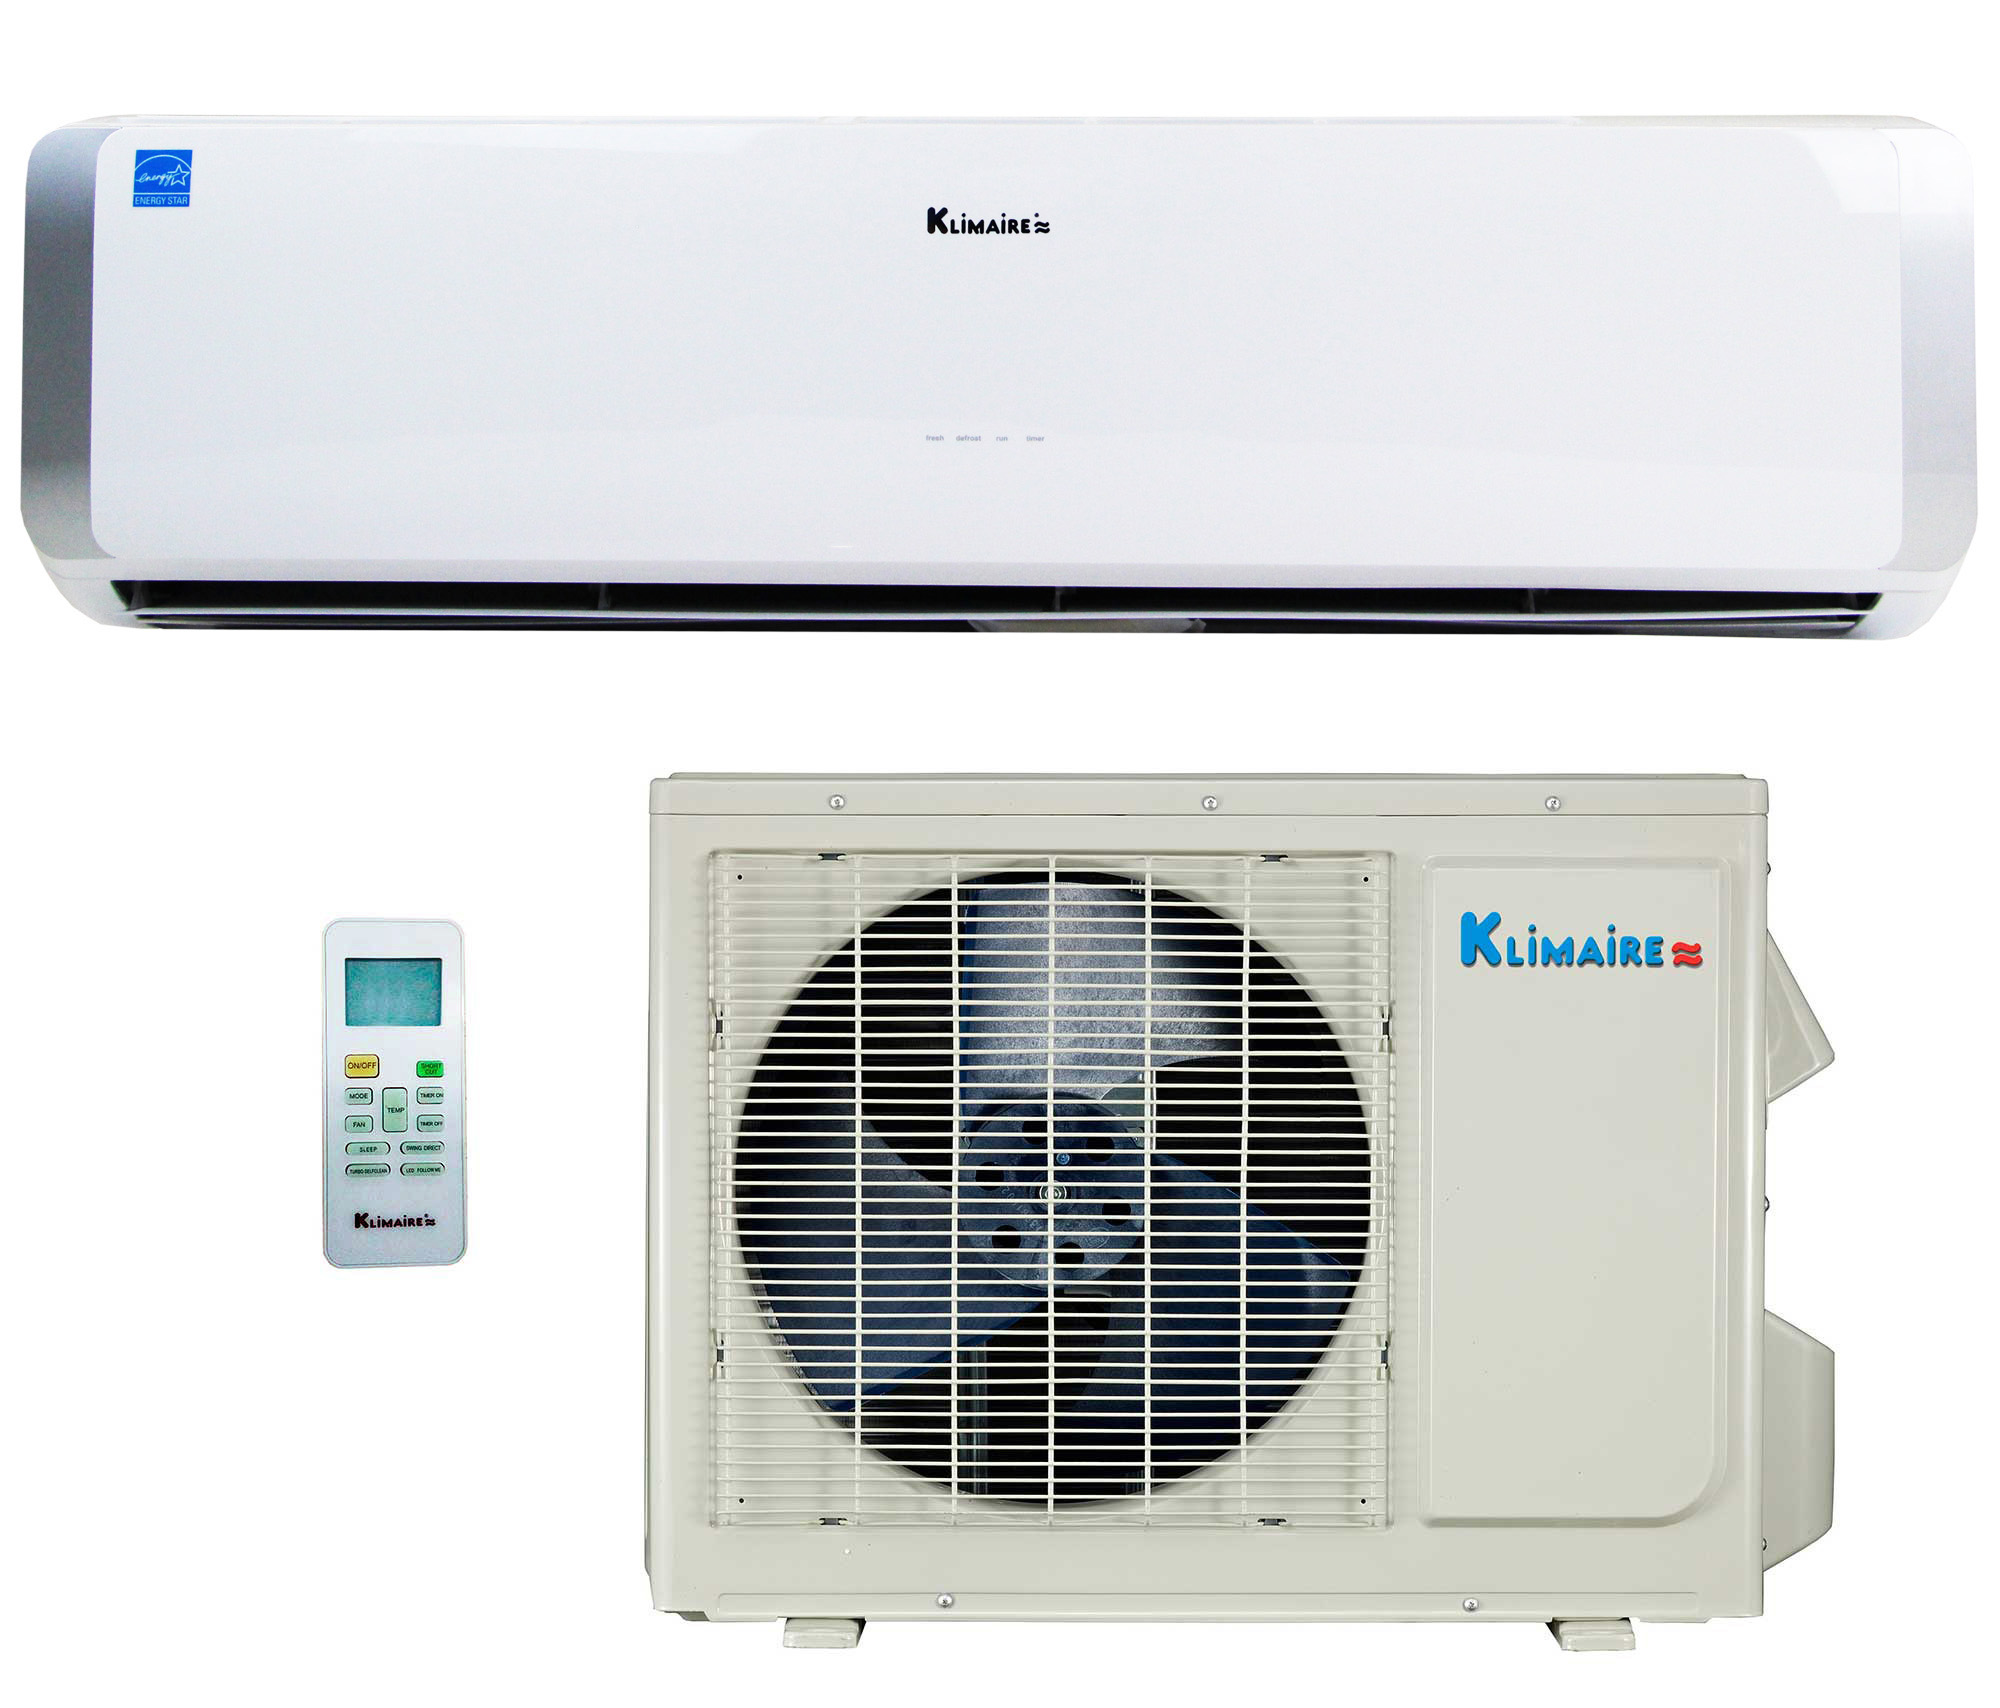 #1B70B0 18 000 Btu Klimaire 21 SEER DC Inverter Ductless Mini  Best 5583 Most Efficient Mini Split Heat Pump photos with 2000x1708 px on helpvideos.info - Air Conditioners, Air Coolers and more